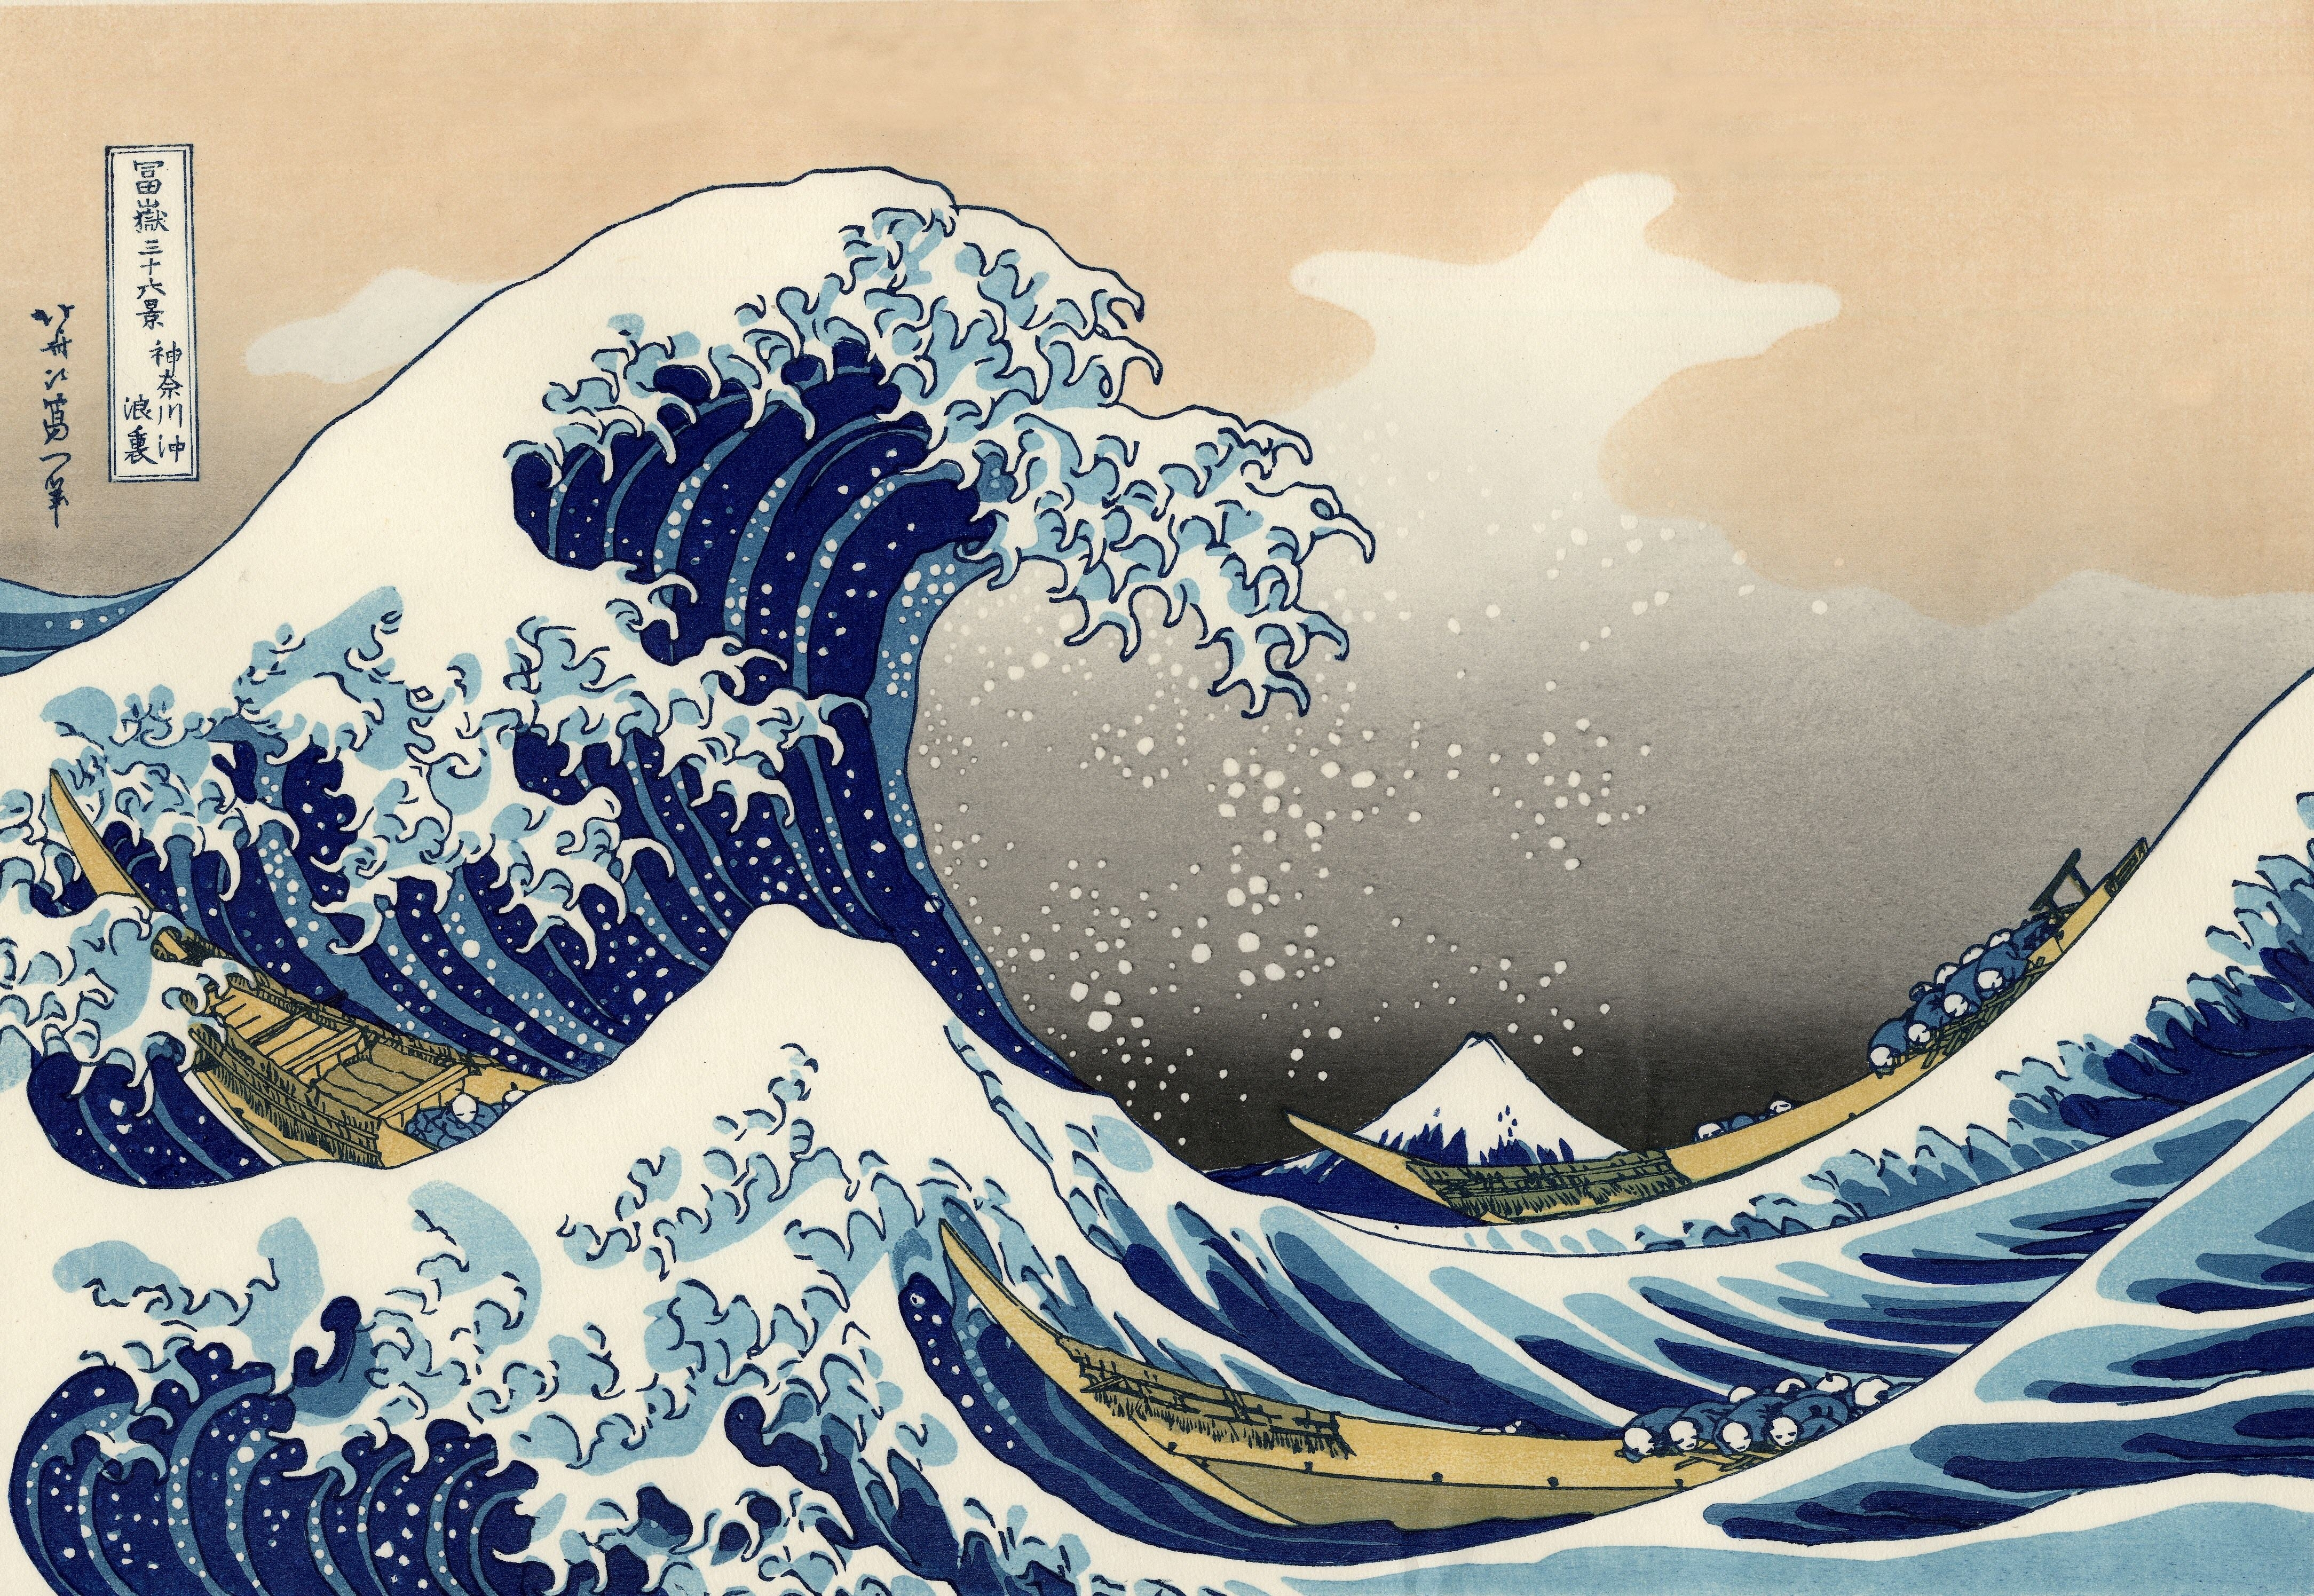 the great wave off kanagawa 4k ultra hd wallpaper and background